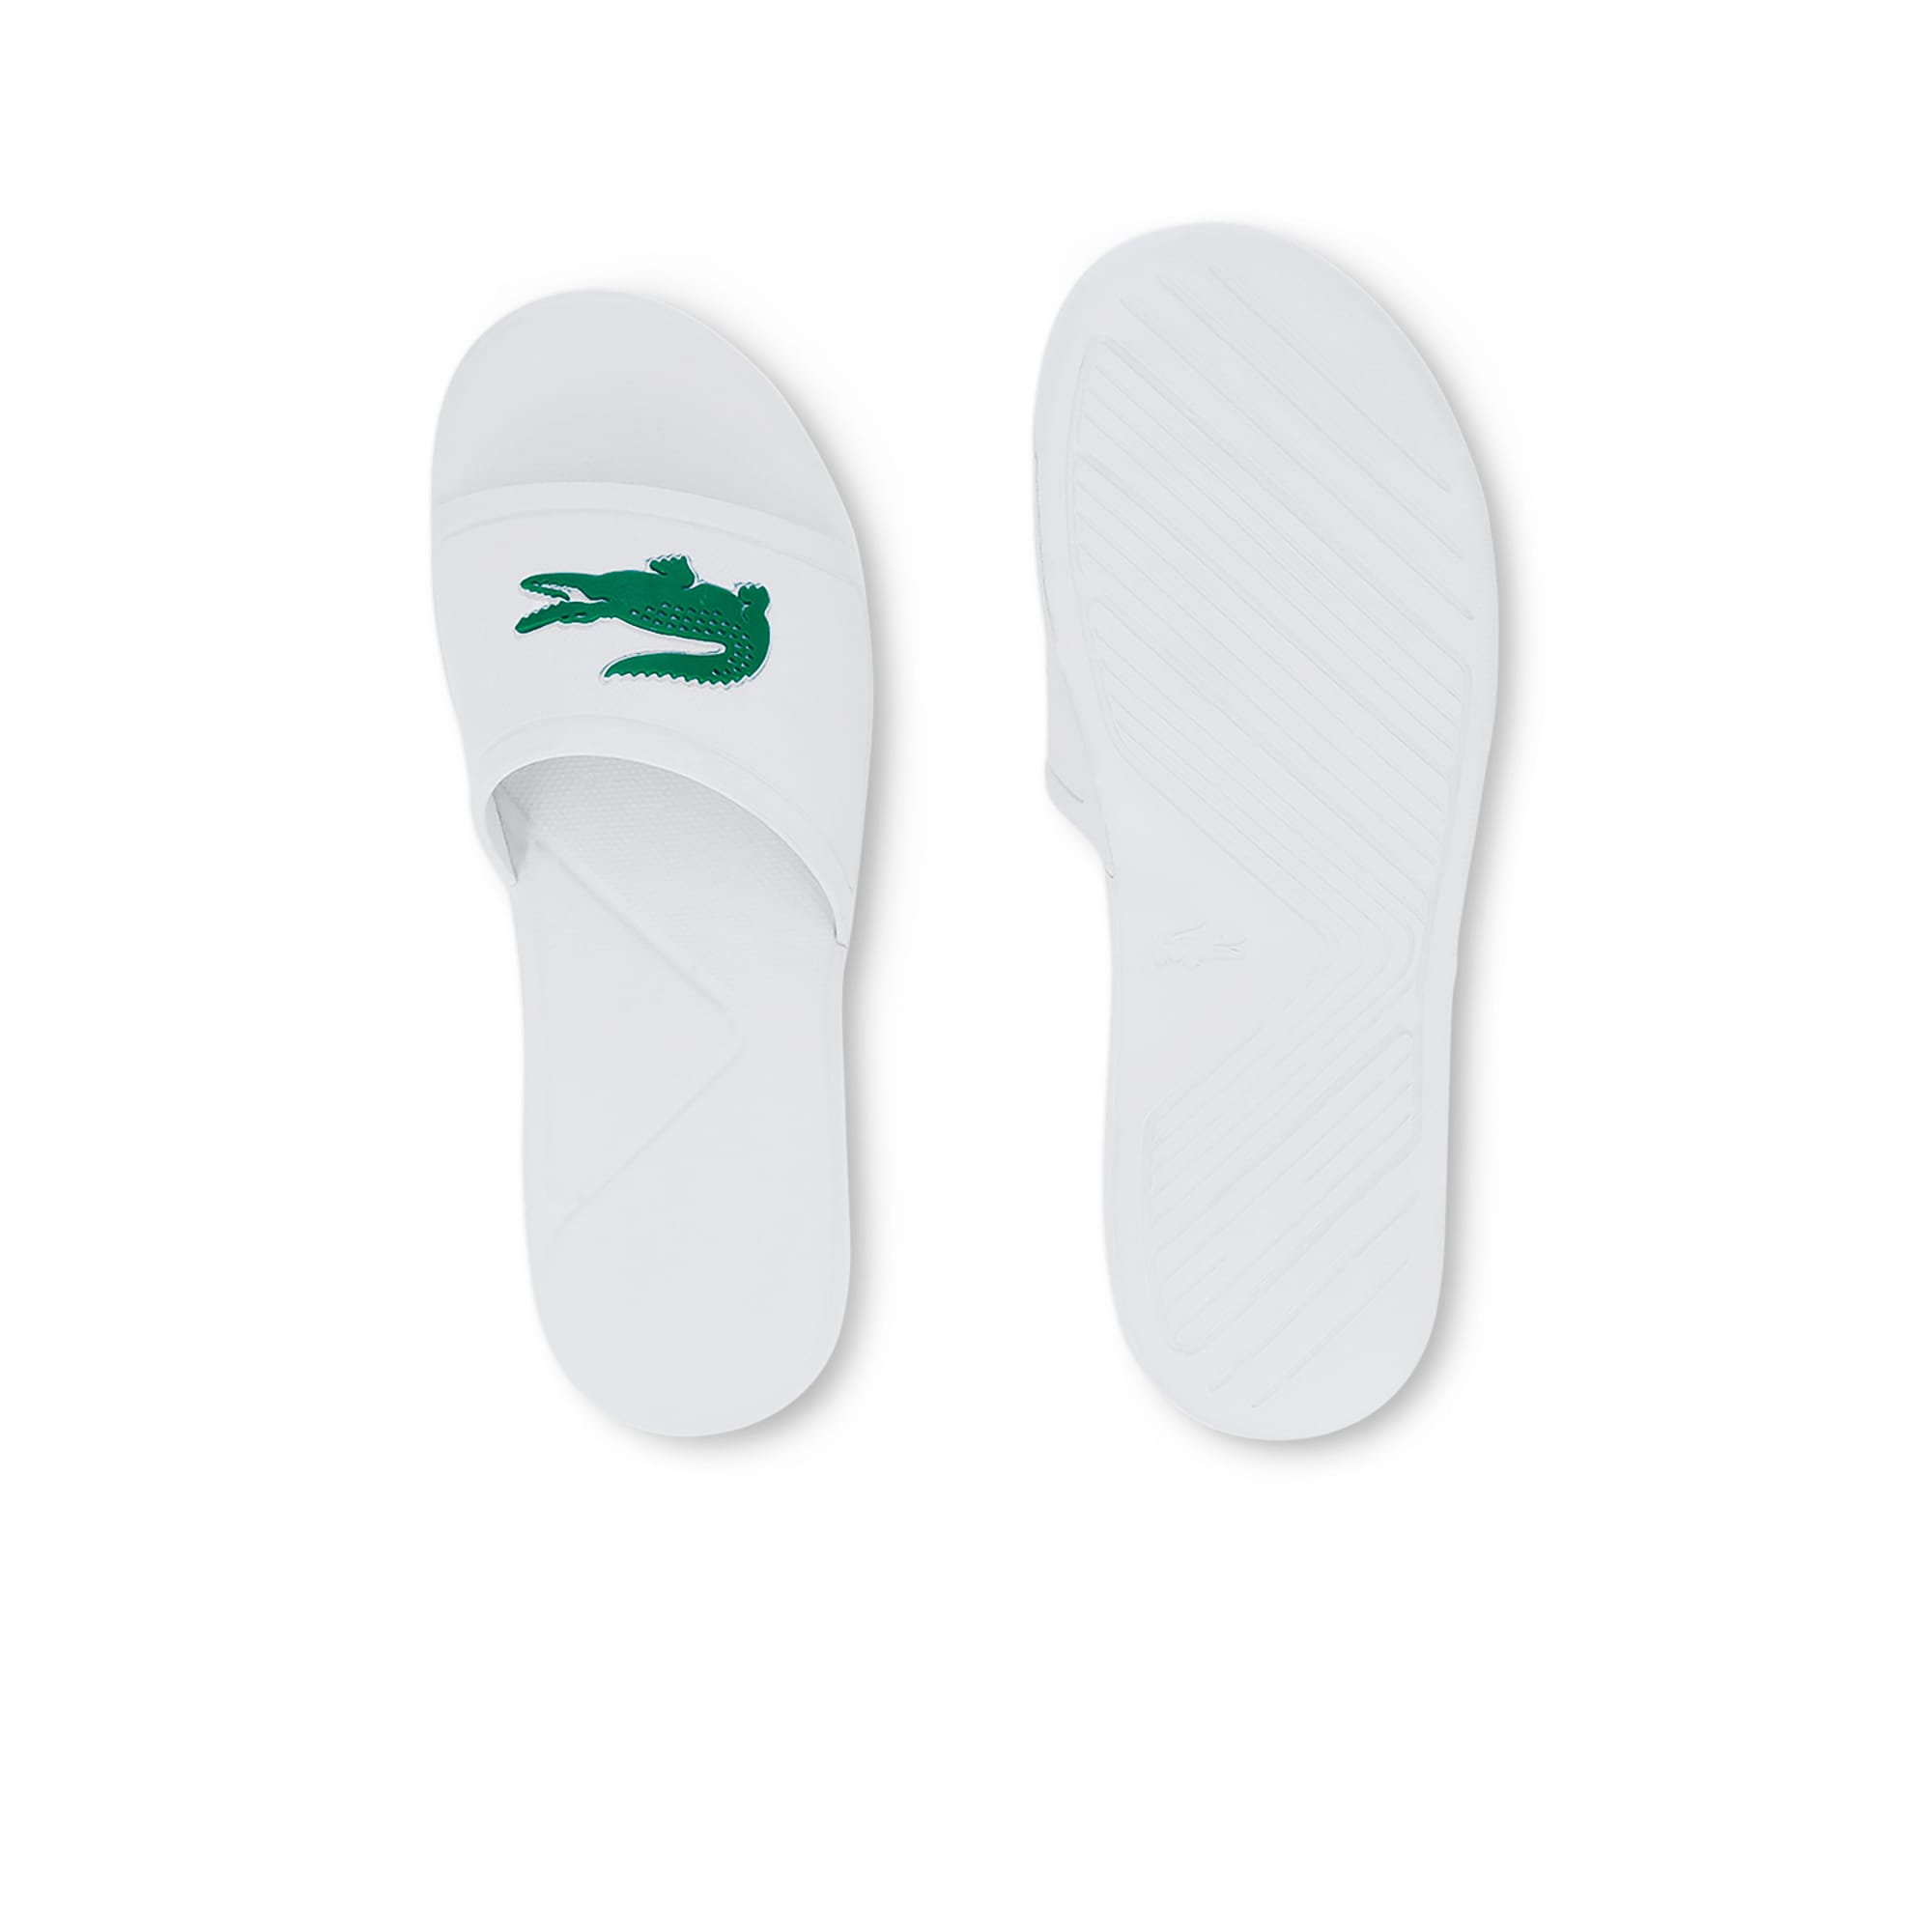 Juniors' L.30 Slides with Oversized Croc